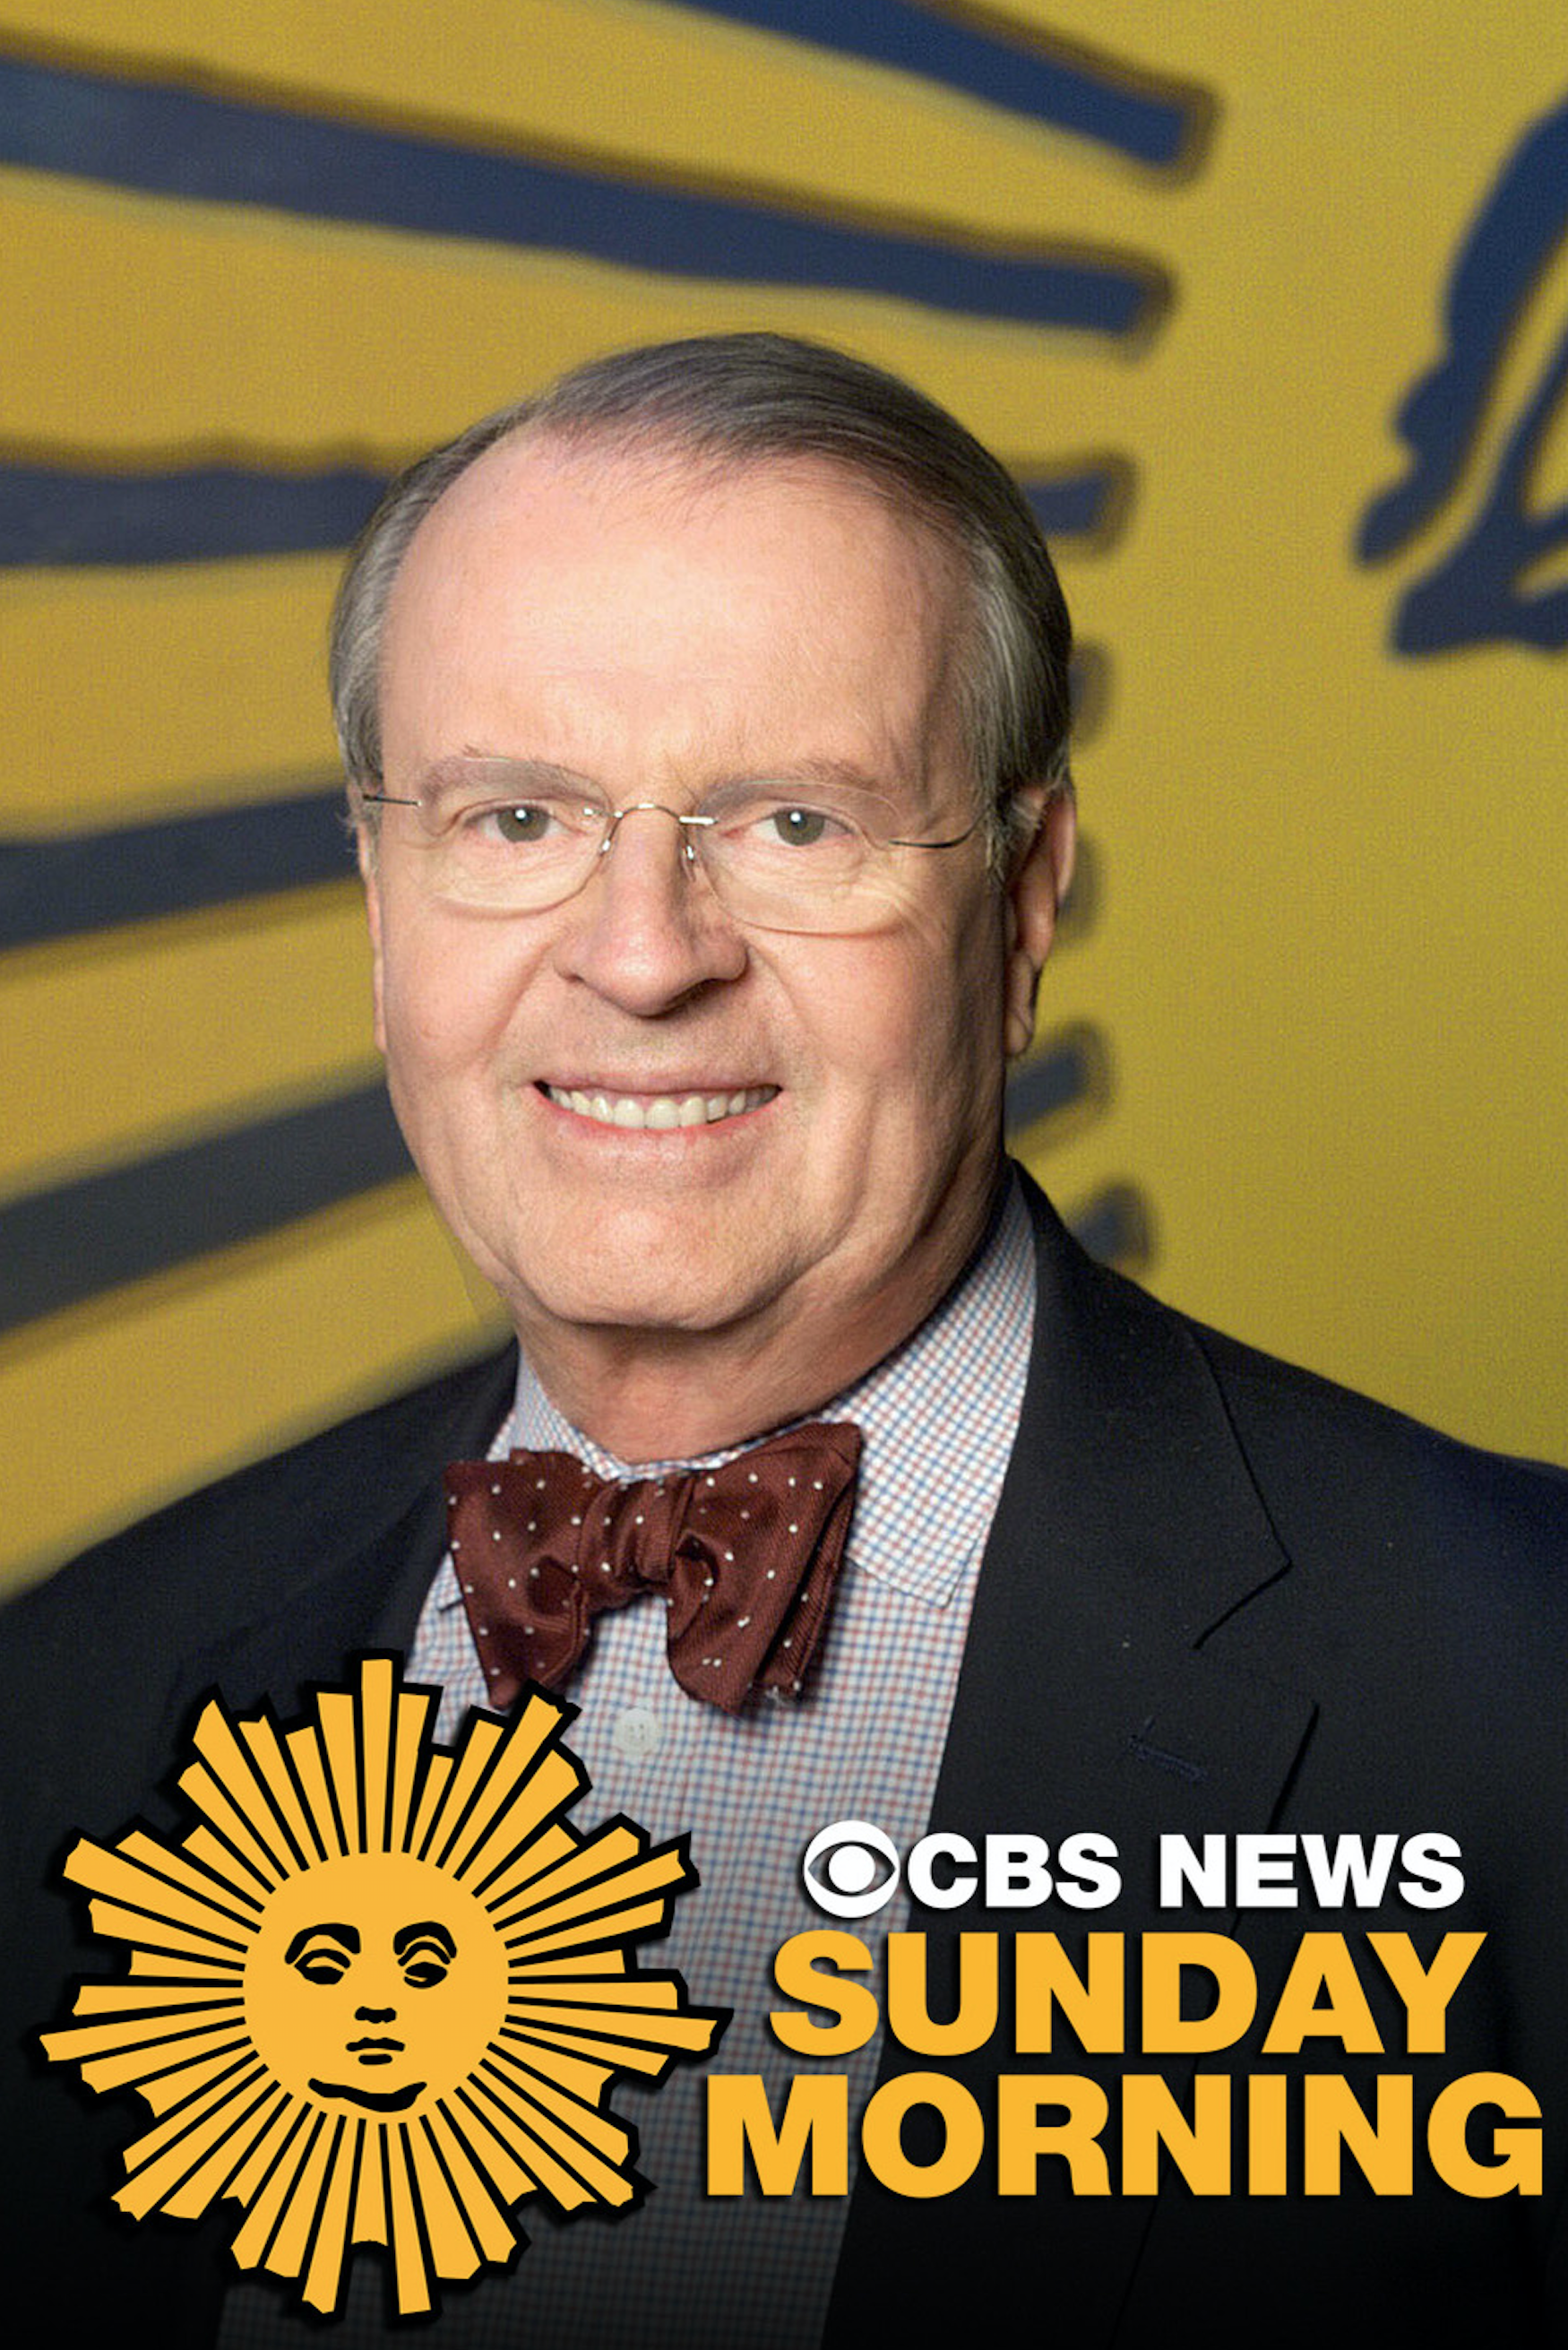 cbs-news-sunday-morning-charles-osgood